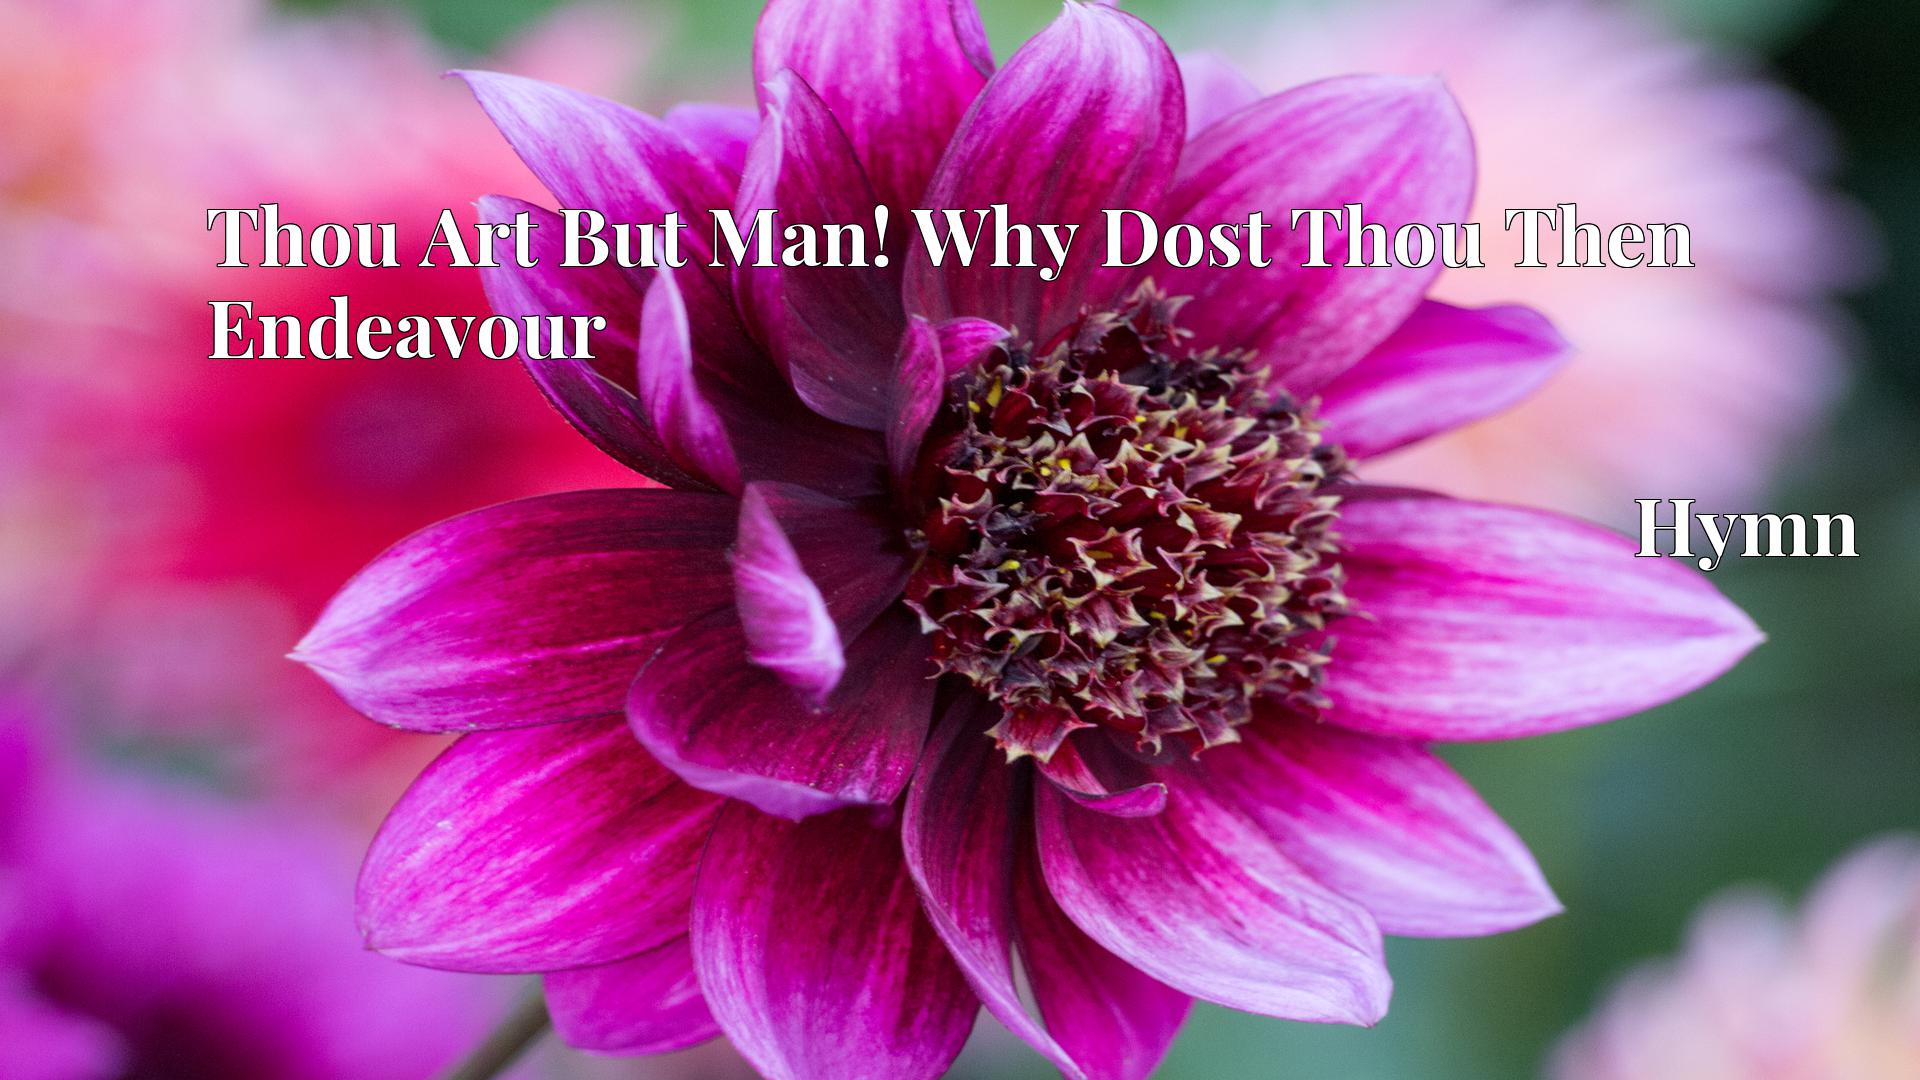 Thou Art But Man! Why Dost Thou Then Endeavour - Hymn